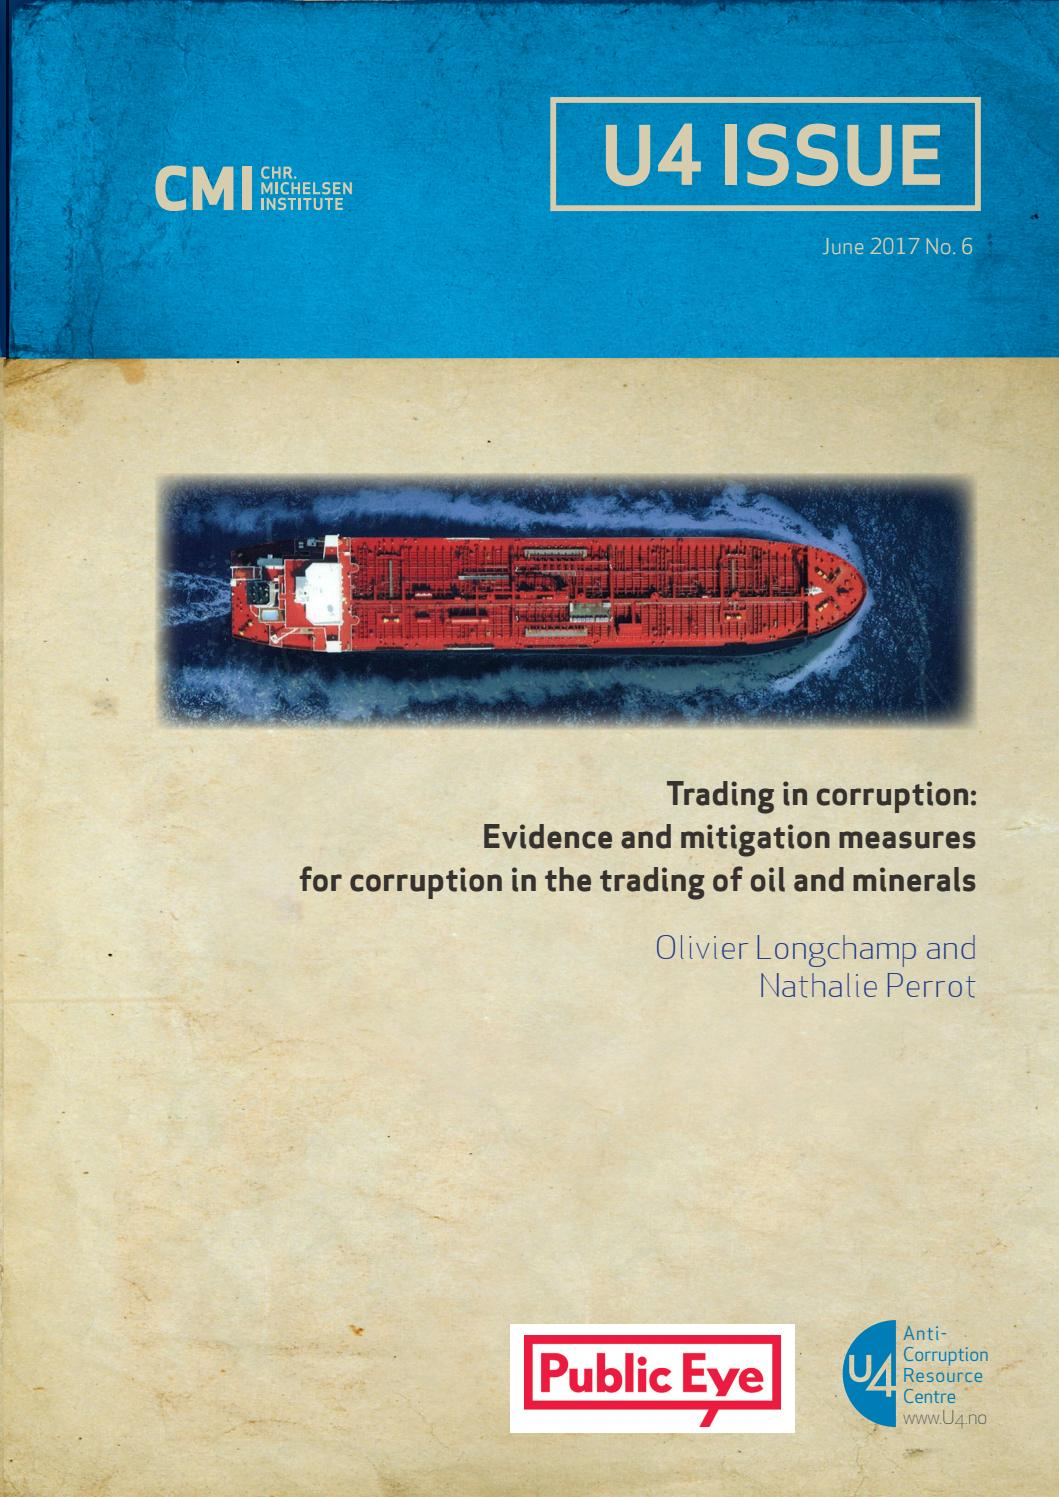 Corruption risks in commodity trading operations by Public